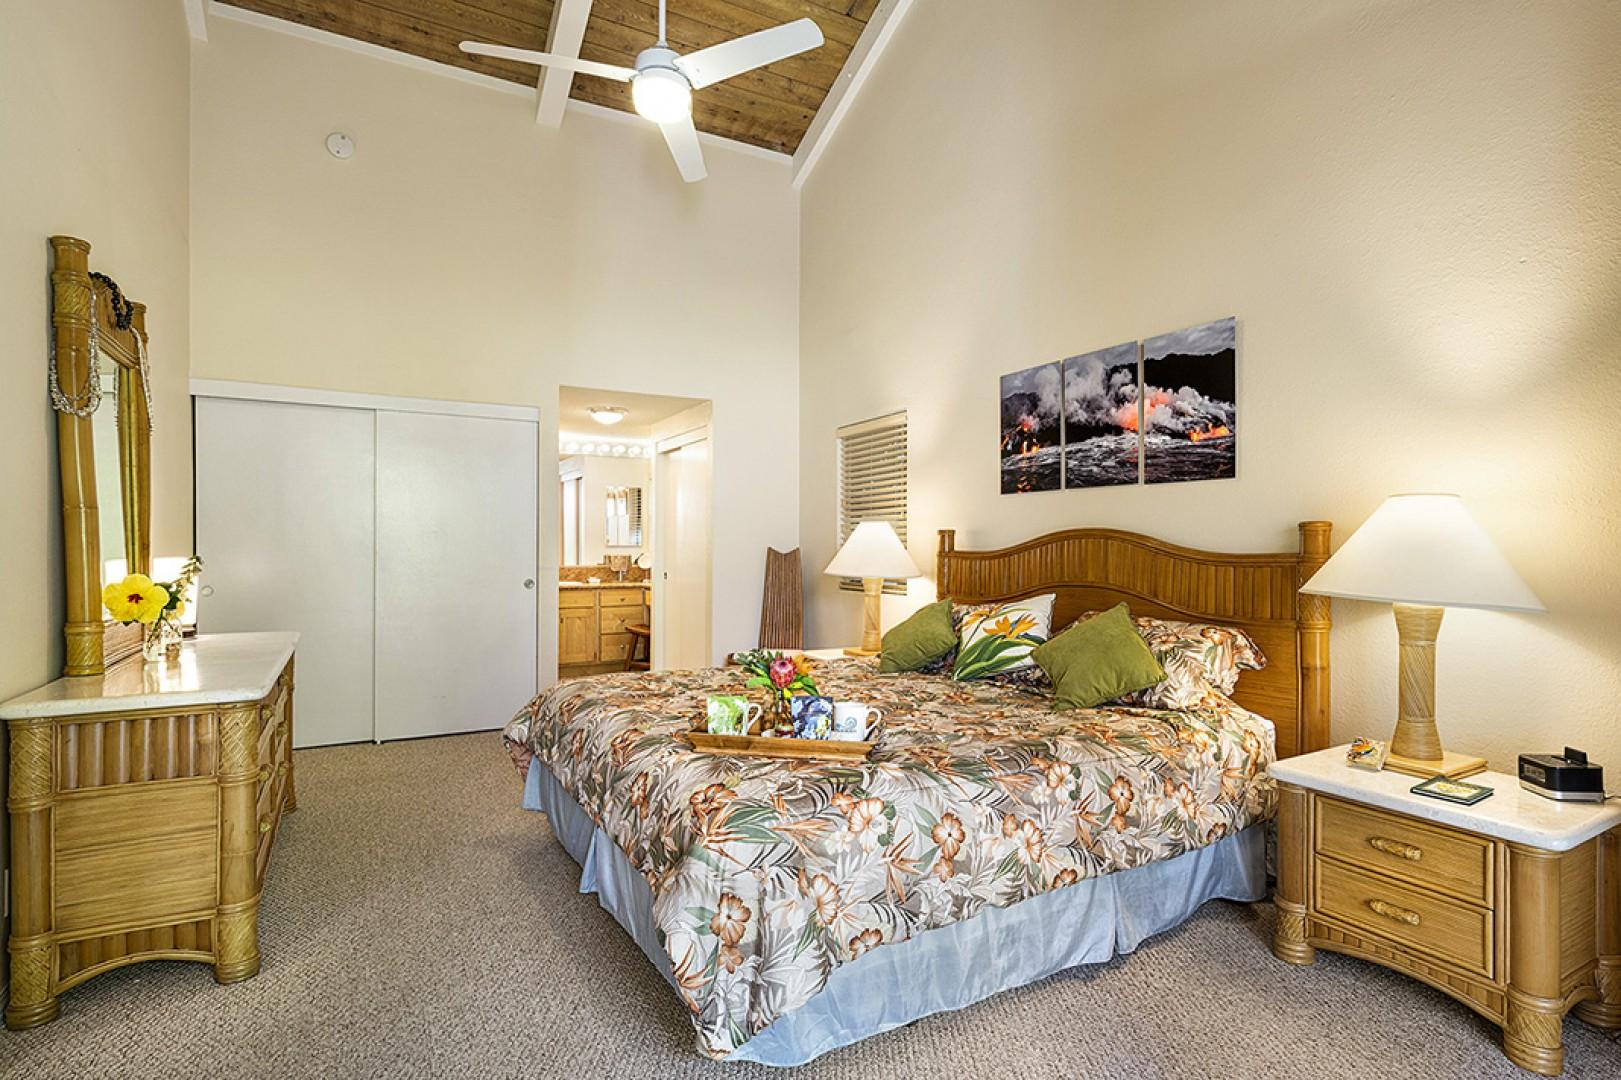 Enjoy waking each morning in this Beautiful Master bedroom!